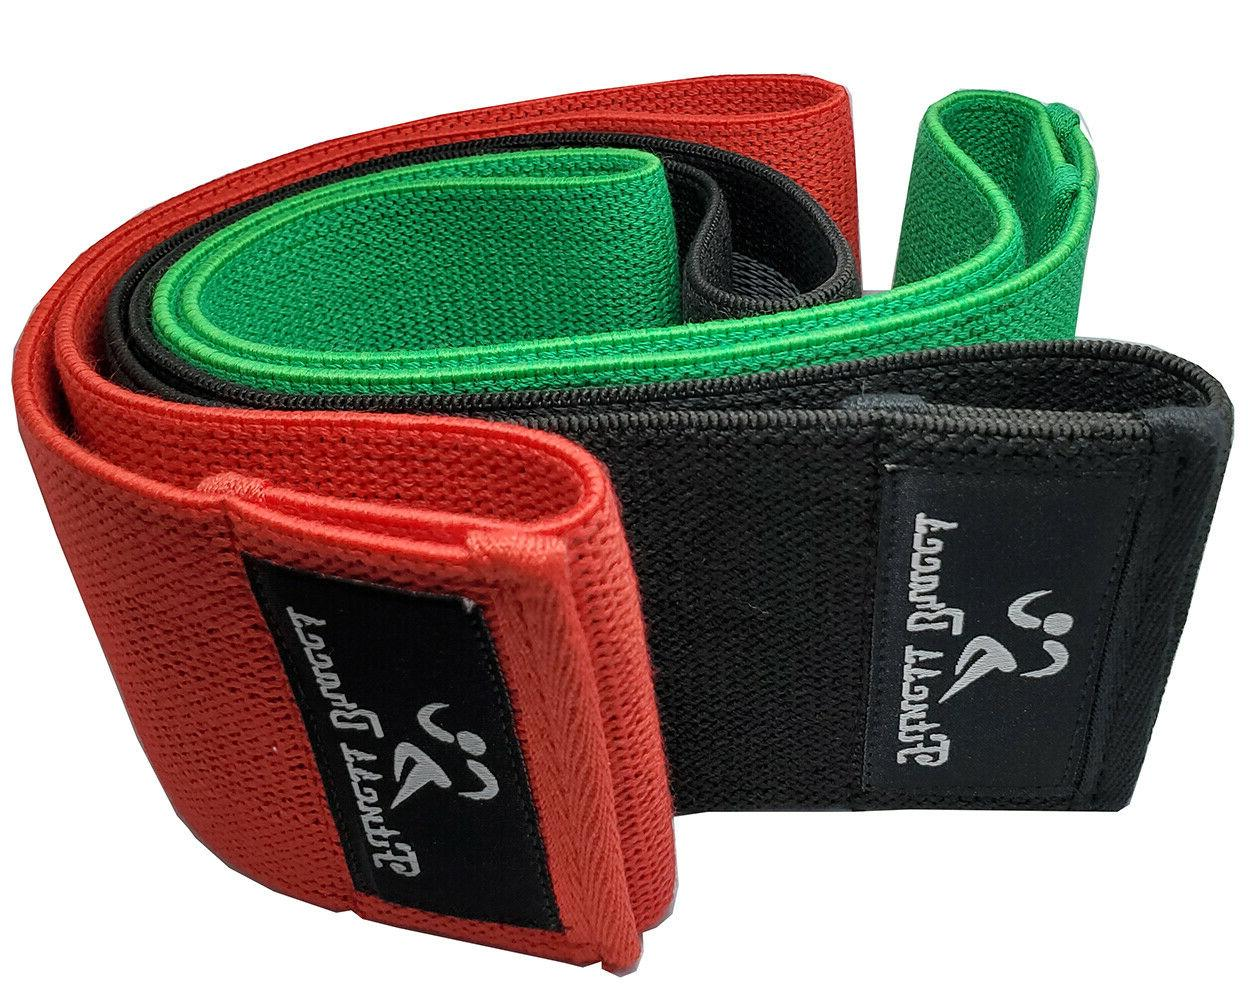 Resistance Hip Band Loop Workout Non-Slip Legs Exercise